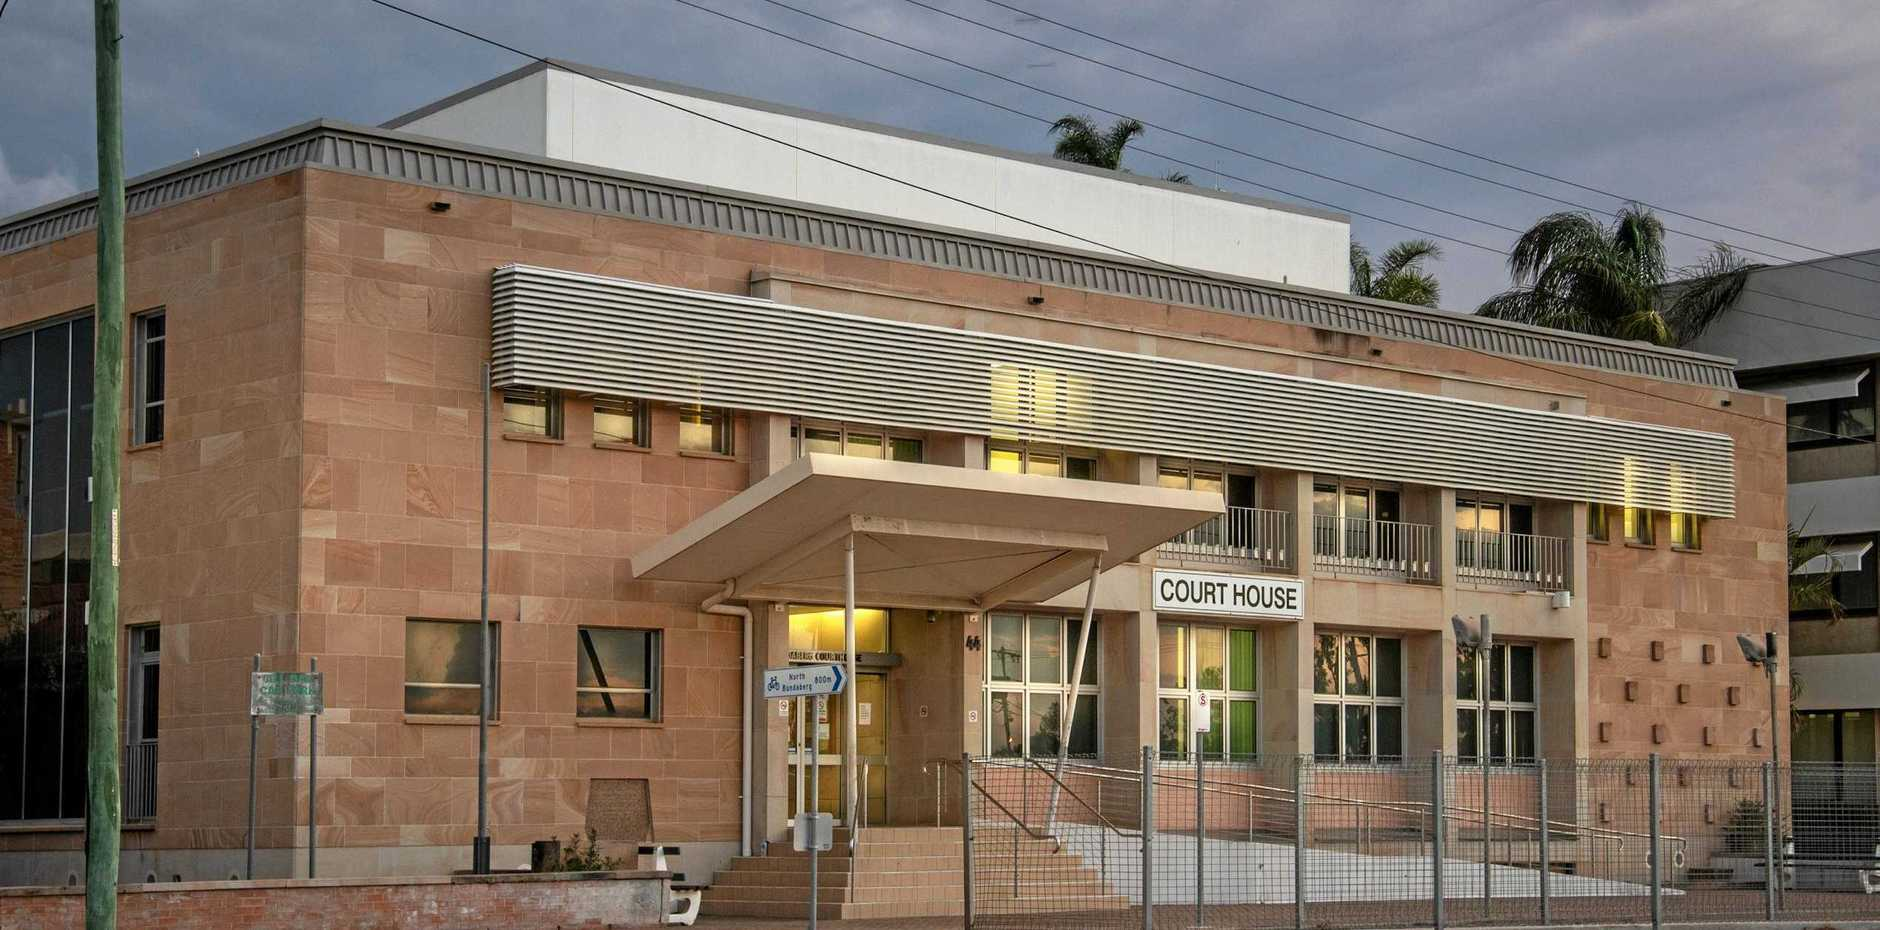 BAIL REFUSED: A man who was allegedly arrested with a syringe on his person has faced Bundaberg Magistrates Court.